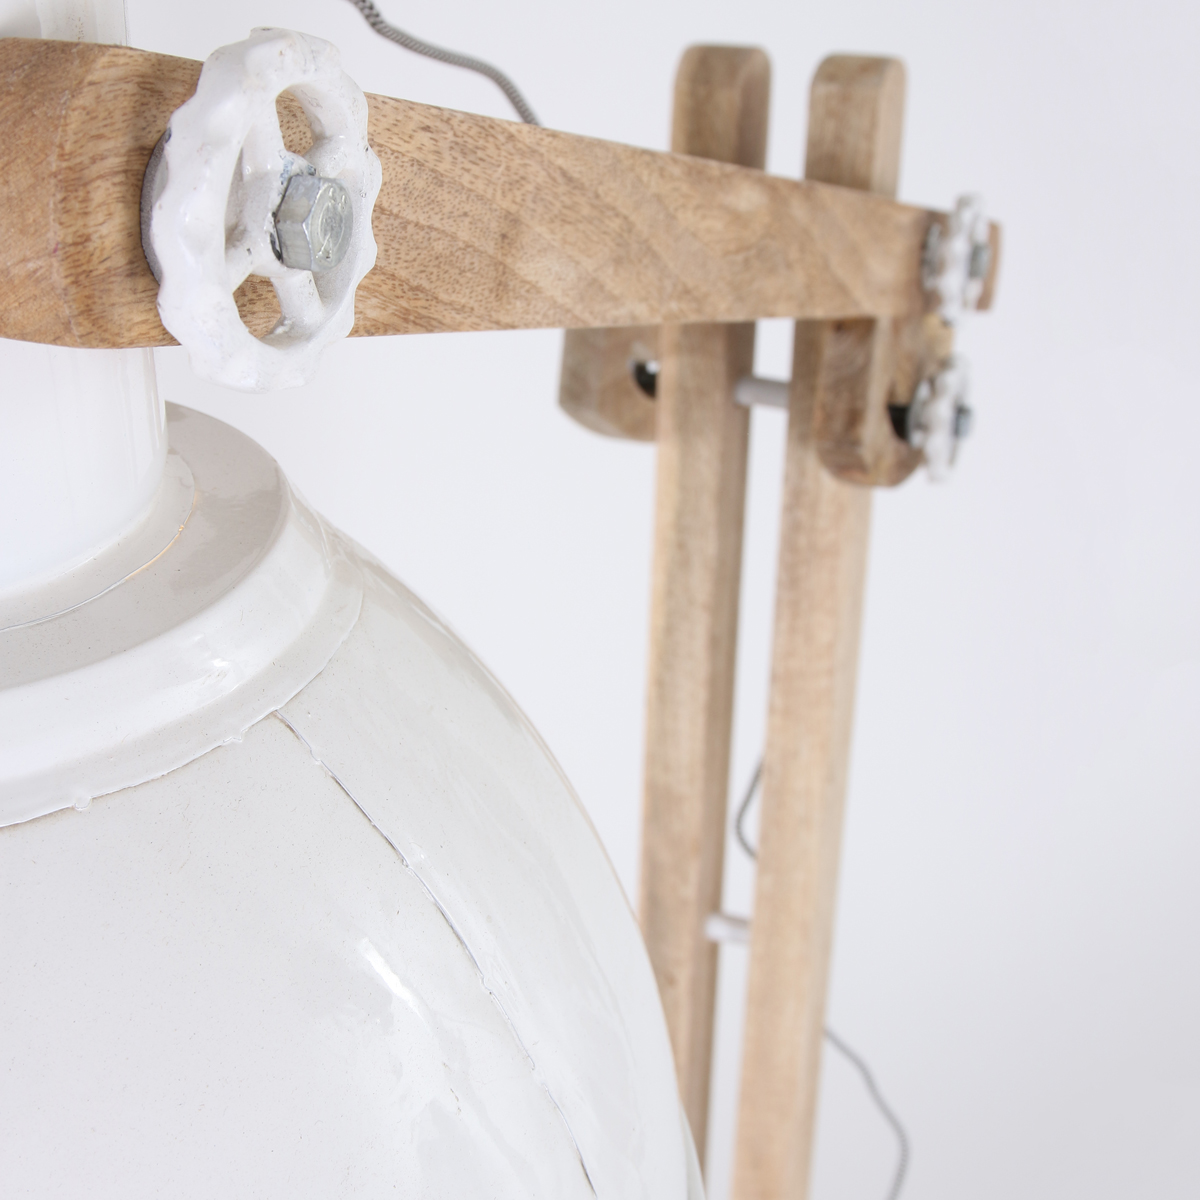 Stehlampe Aus Holz Hops Industrie Lampe Holz Weiß Stehlampen Online